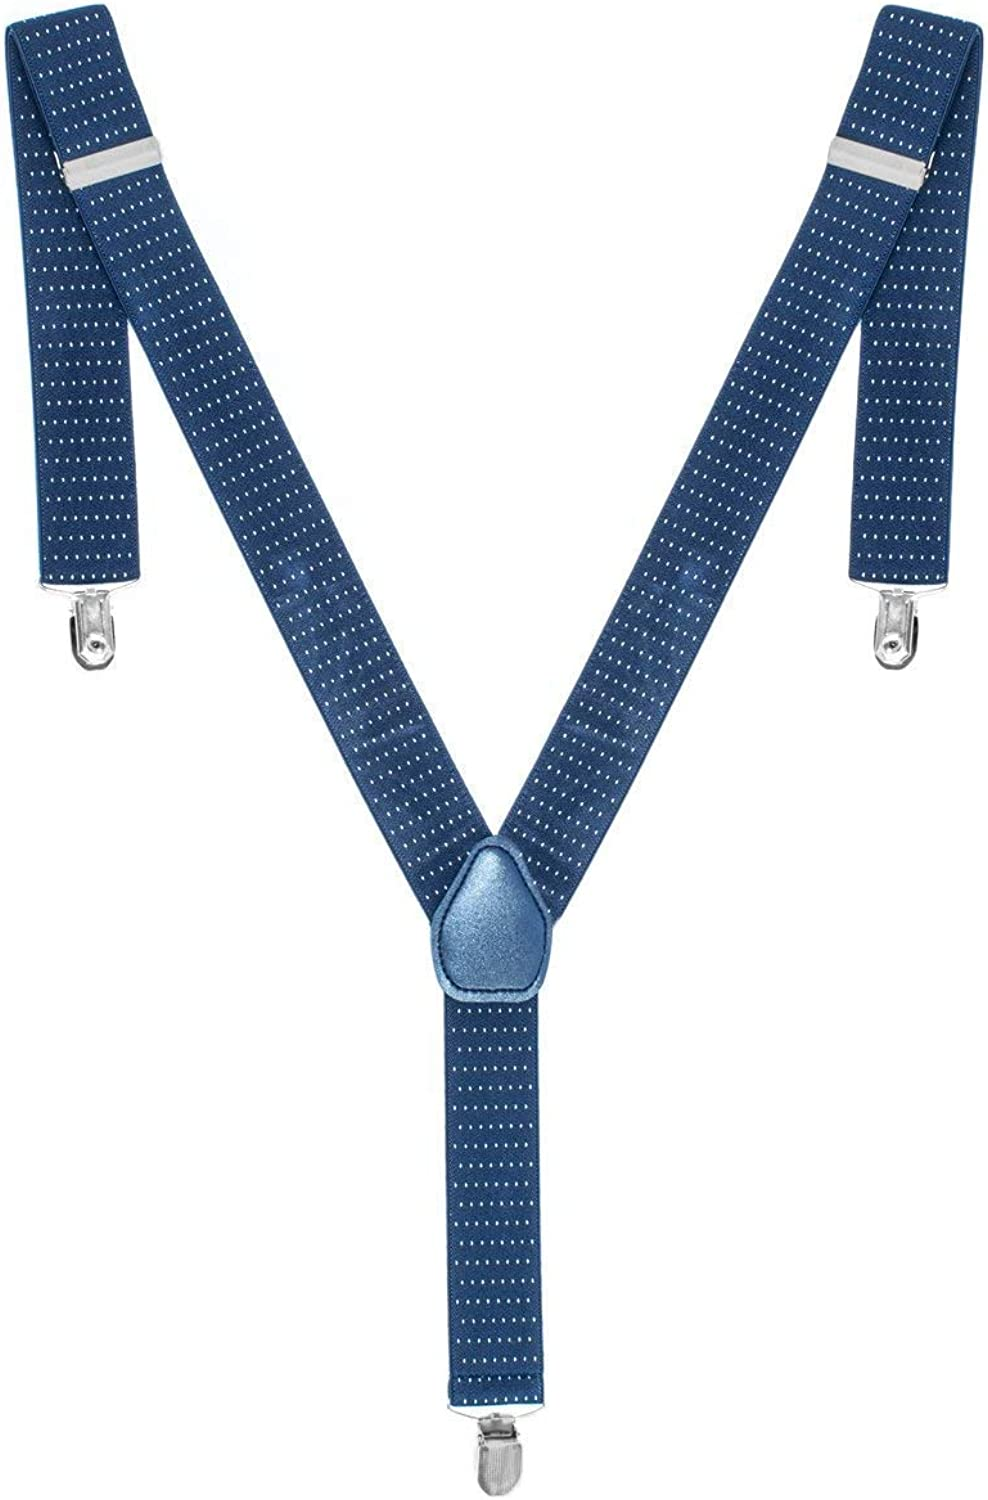 Trimming Shop Men's Suspenders With White Polka Dot Design